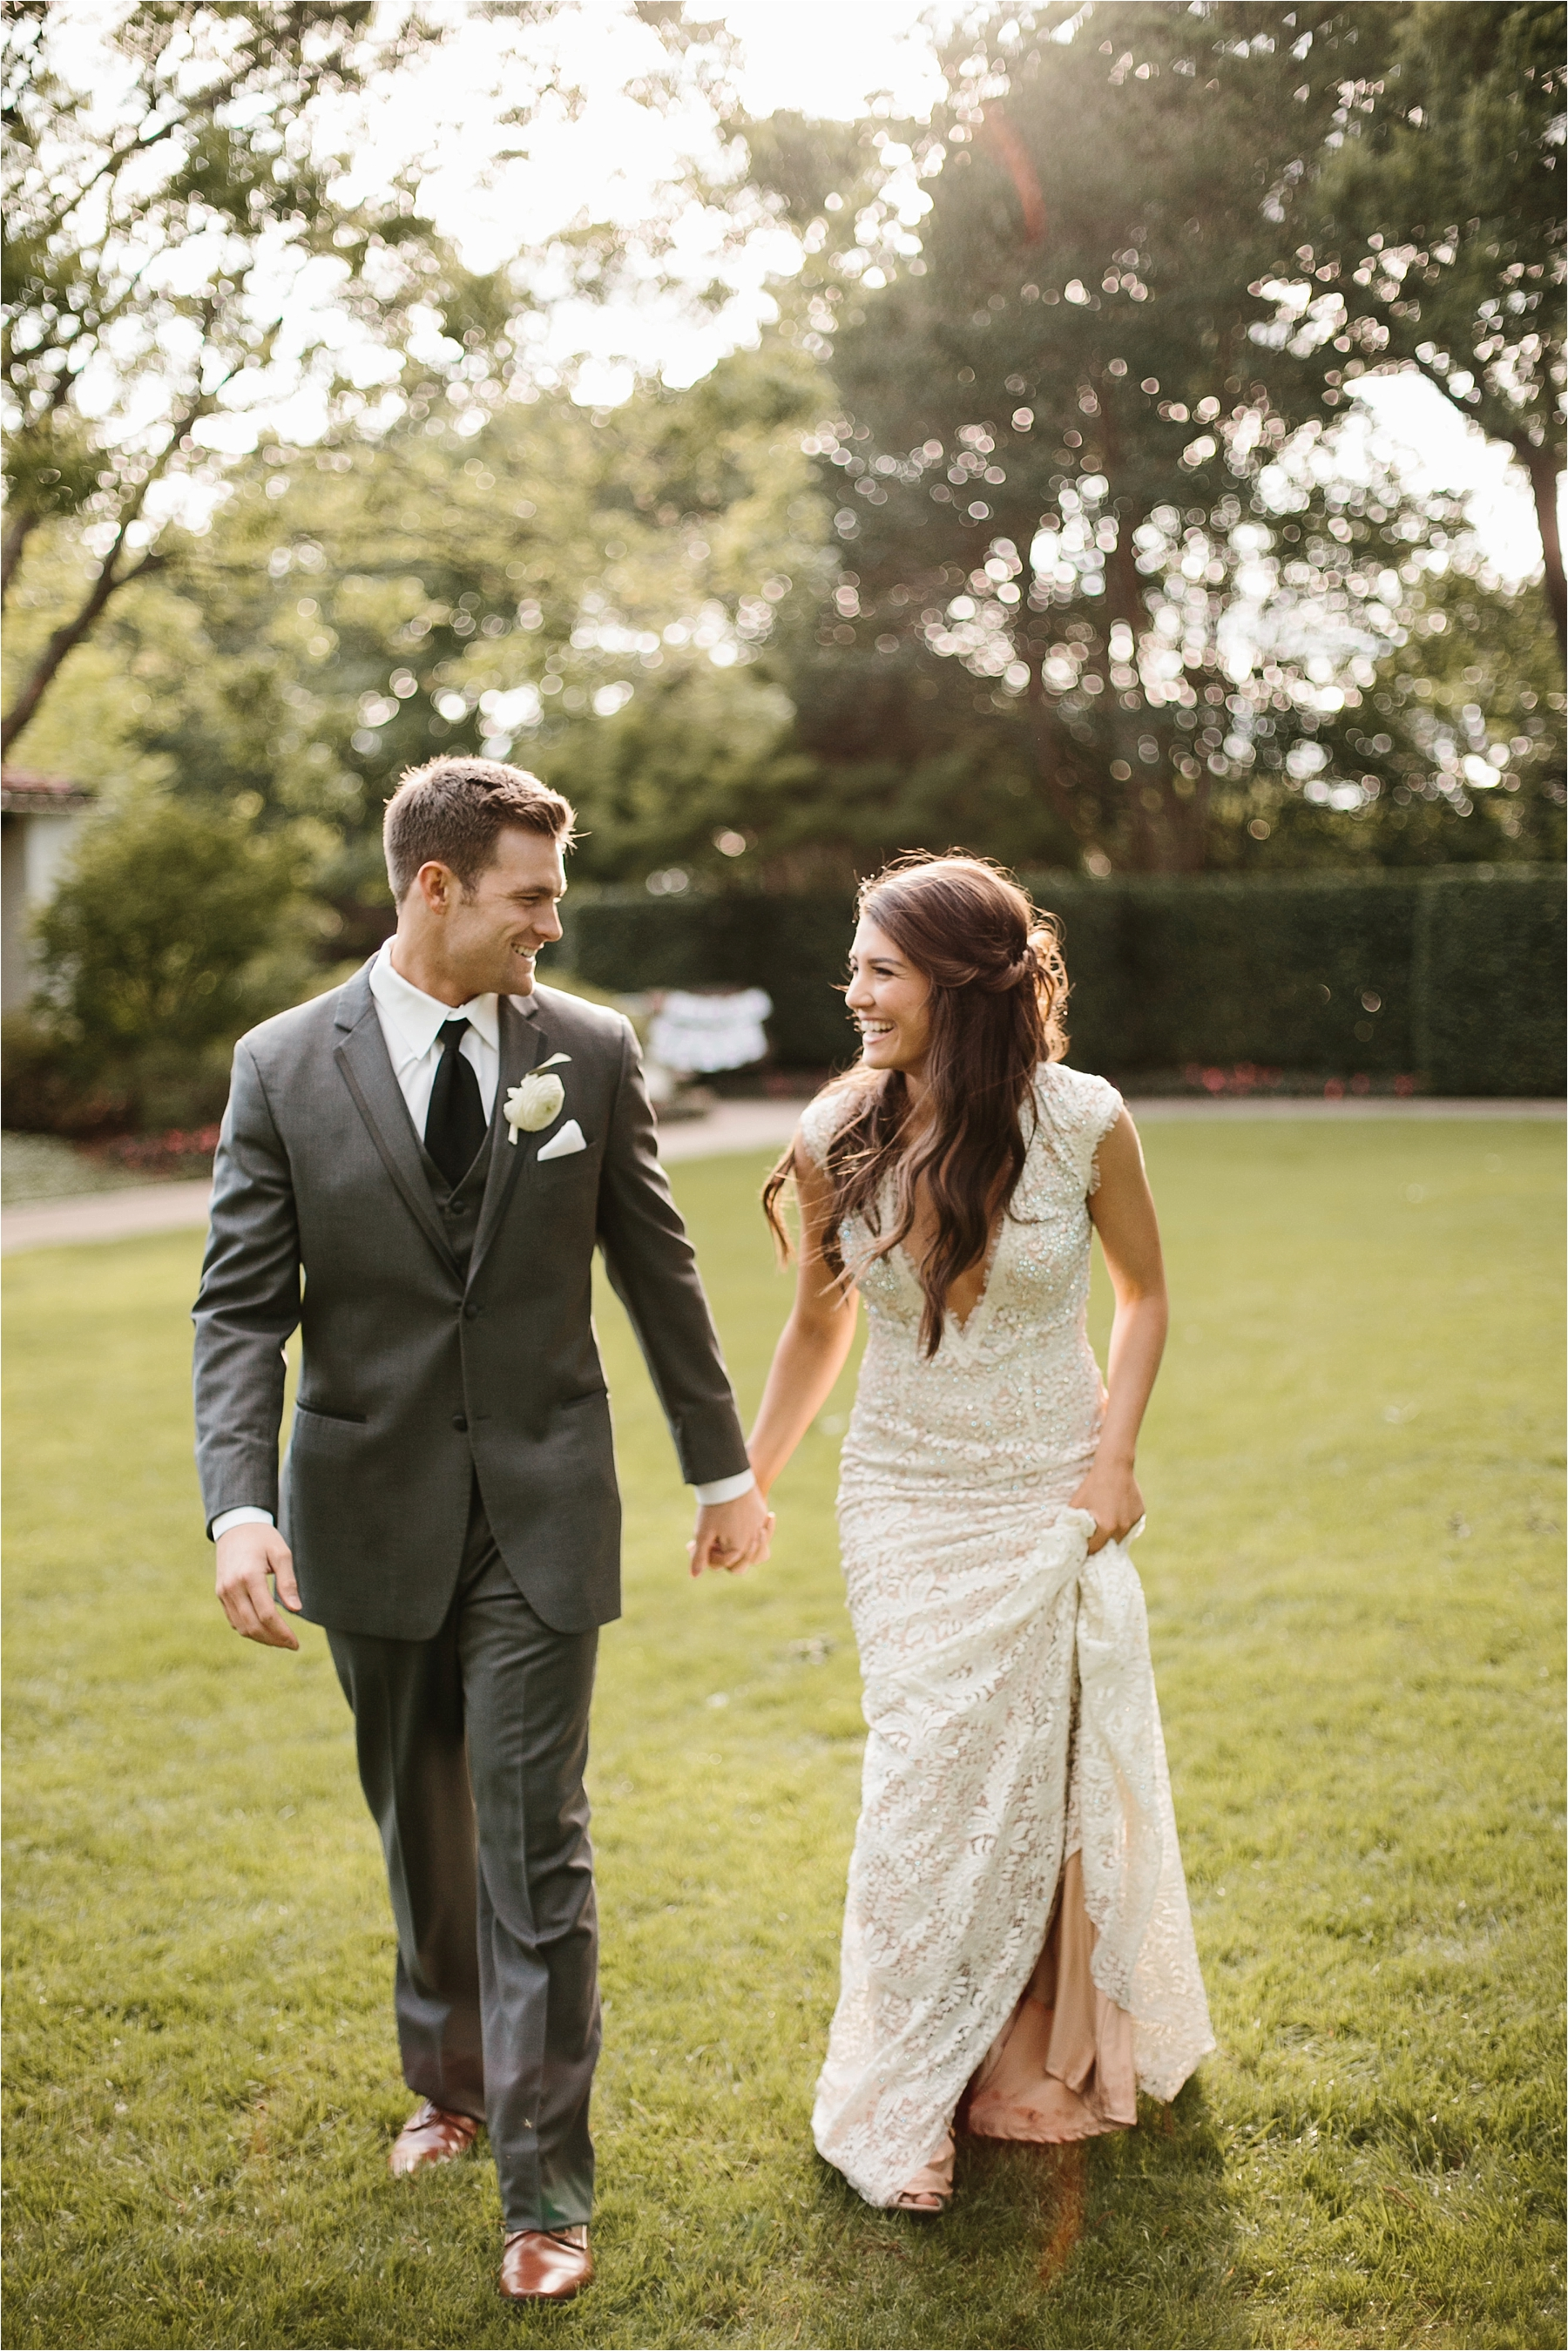 Devyn + Caden __ a Dallas Arboretum Garden Style Wedding by North Texas Wedding Photographer Rachel Meagan Photography __ 082